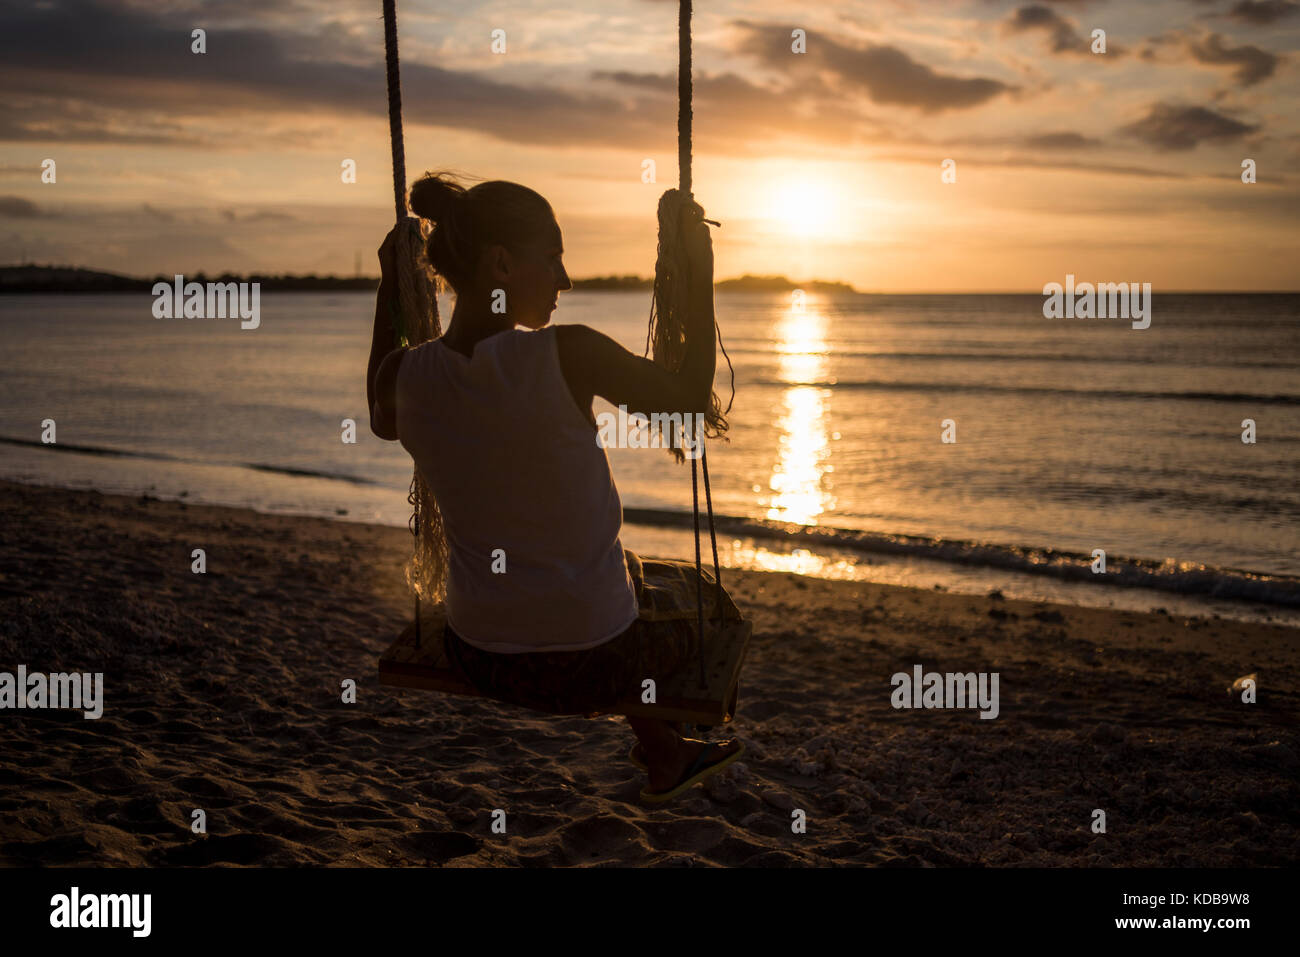 A silhouette of a young woman on a swing in a beach of Gili Air, Gili Islands, Indonesia. - Stock Image